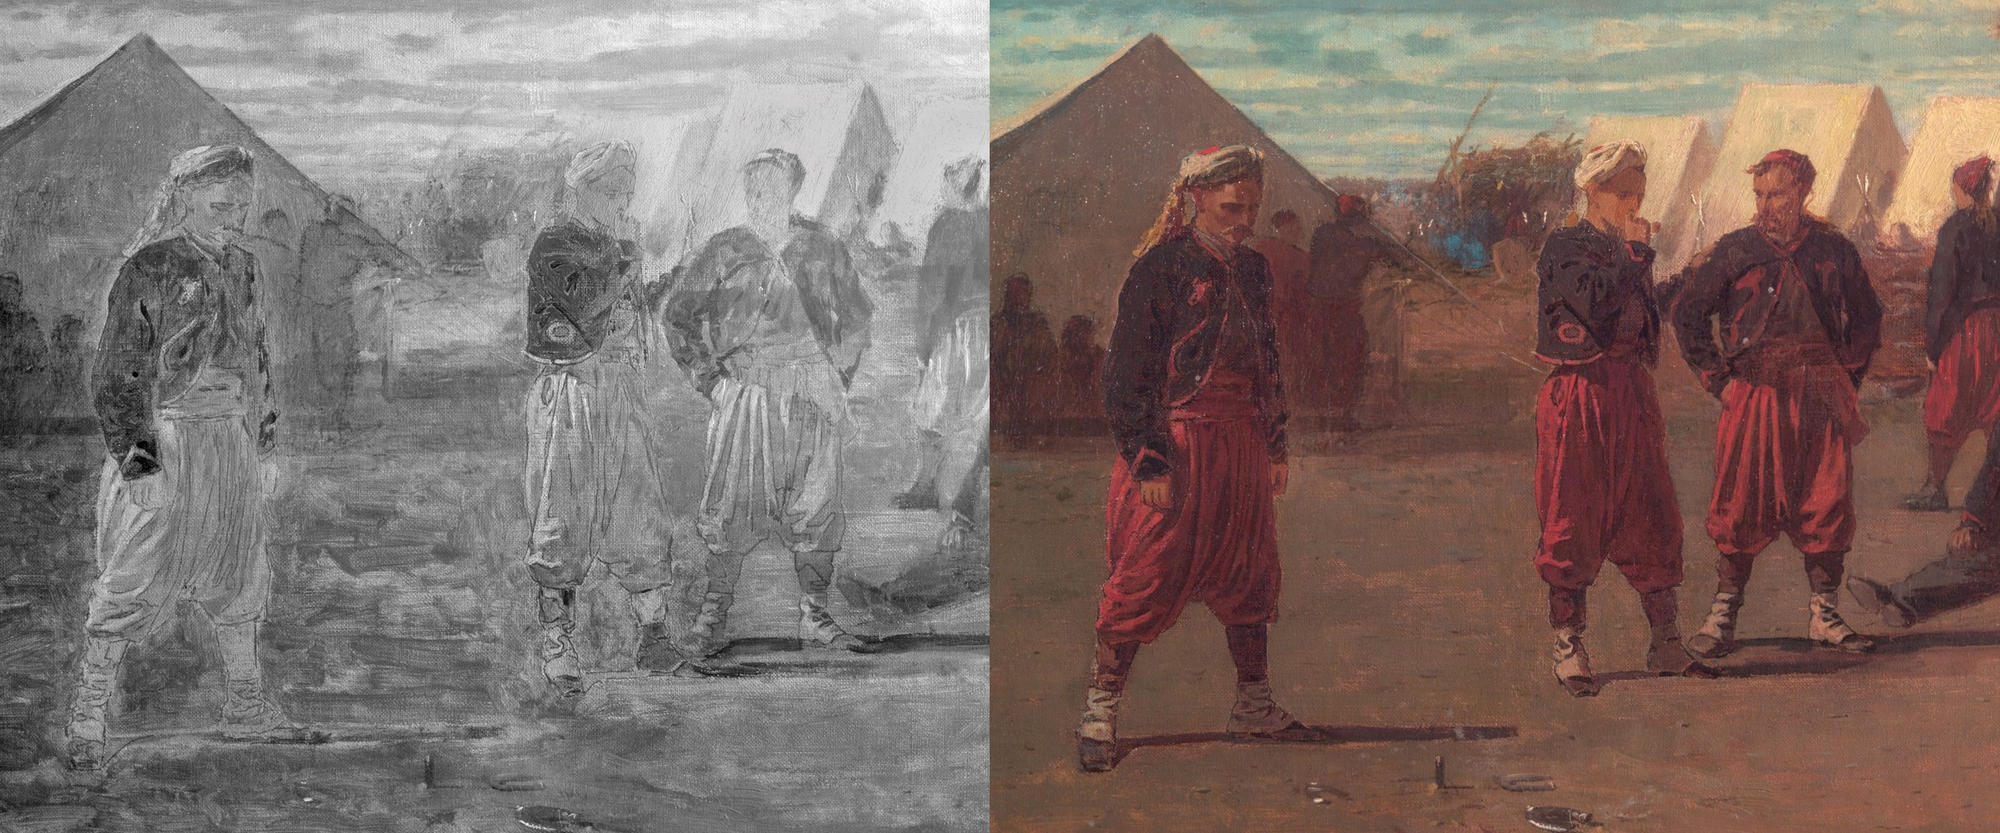 Reflected infrared and normal illumination of detail, Pitching Quoits, Winslow Homer